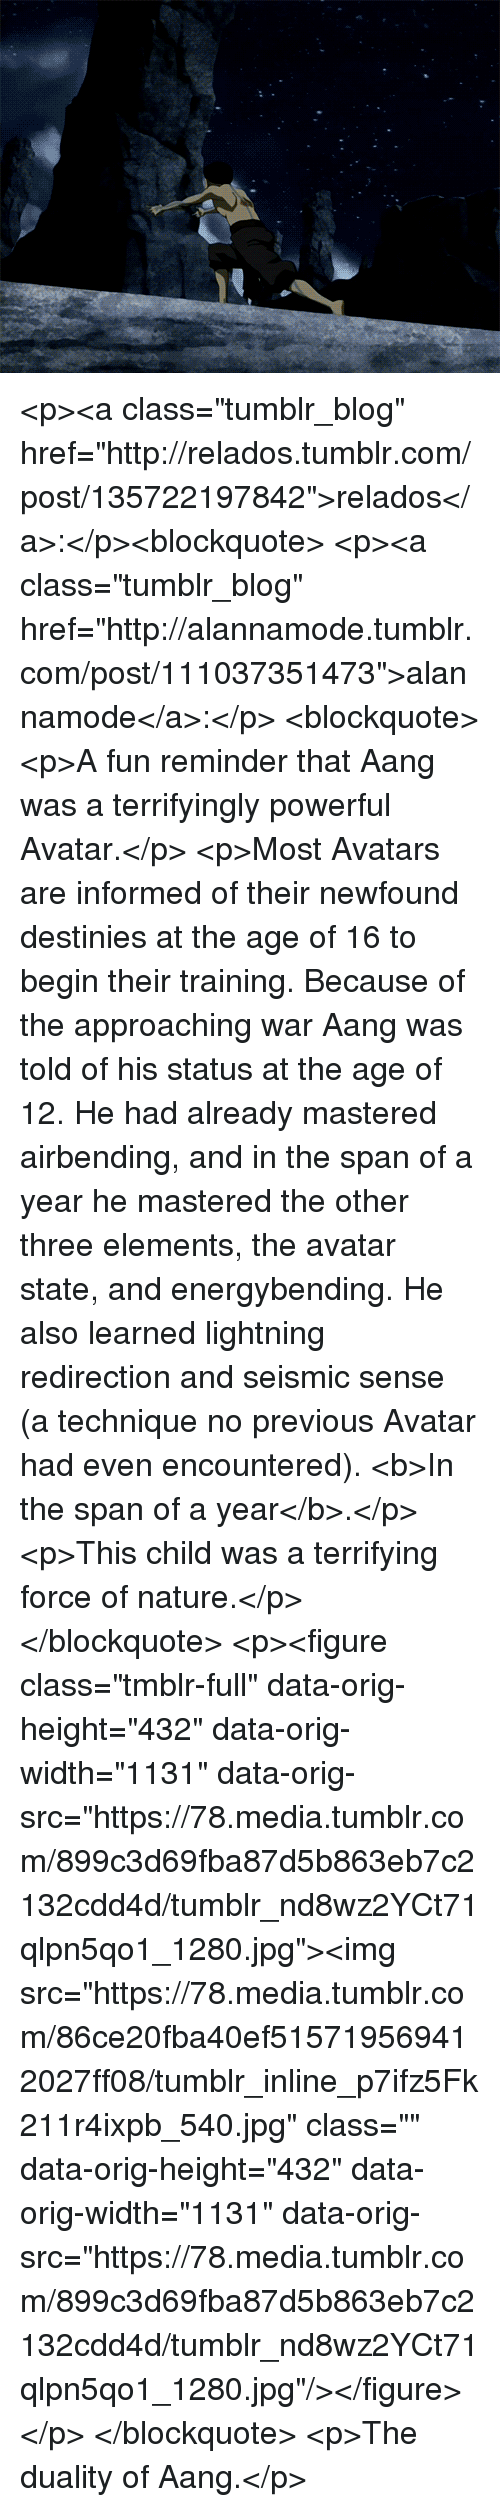 """Aang: <p><a class=""""tumblr_blog"""" href=""""http://relados.tumblr.com/post/135722197842"""">relados</a>:</p><blockquote> <p><a class=""""tumblr_blog"""" href=""""http://alannamode.tumblr.com/post/111037351473"""">alannamode</a>:</p> <blockquote> <p>A fun reminder that Aang was a terrifyingly powerful Avatar.</p> <p>Most Avatars are informed of their newfound destinies at the age of 16 to begin their training. Because of the approaching war Aang was told of his status at the age of 12. He had already mastered airbending, and in the span of a year he mastered the other three elements, the avatar state, and energybending. He also learned lightning redirection and seismic sense (a technique no previous Avatar had even encountered). <b>In the span of a year</b>.</p> <p>This child was a terrifying force of nature.</p> </blockquote> <p><figure class=""""tmblr-full"""" data-orig-height=""""432"""" data-orig-width=""""1131"""" data-orig-src=""""https://78.media.tumblr.com/899c3d69fba87d5b863eb7c2132cdd4d/tumblr_nd8wz2YCt71qlpn5qo1_1280.jpg""""><img src=""""https://78.media.tumblr.com/86ce20fba40ef515719569412027ff08/tumblr_inline_p7ifz5Fk211r4ixpb_540.jpg"""" class="""""""" data-orig-height=""""432"""" data-orig-width=""""1131"""" data-orig-src=""""https://78.media.tumblr.com/899c3d69fba87d5b863eb7c2132cdd4d/tumblr_nd8wz2YCt71qlpn5qo1_1280.jpg""""/></figure></p> </blockquote>  <p>The duality of Aang.</p>"""